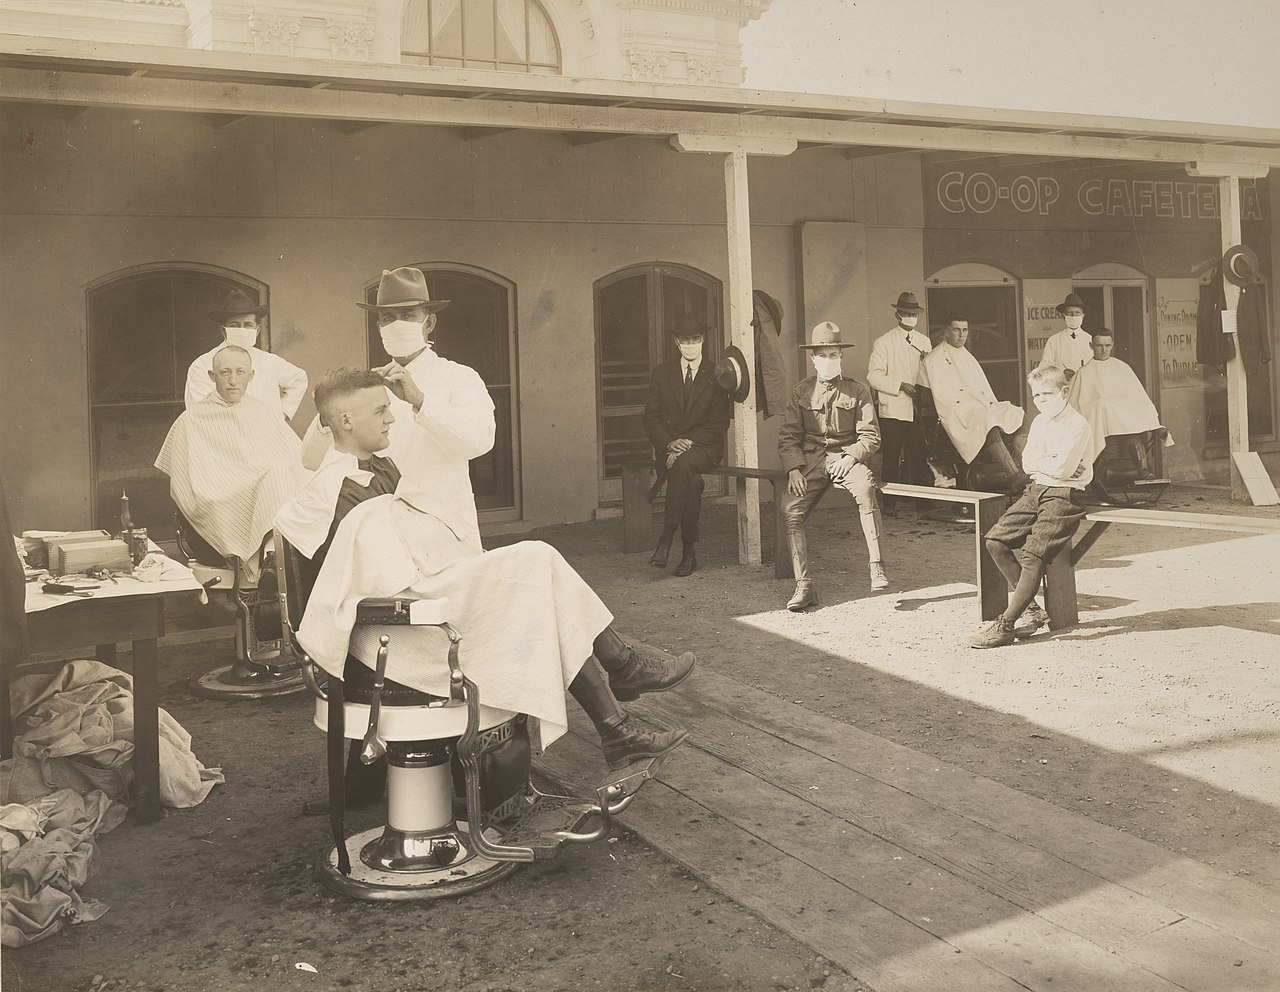 The University of California, Berkeley, California<br Open-air barbershop during the influenza epidemic